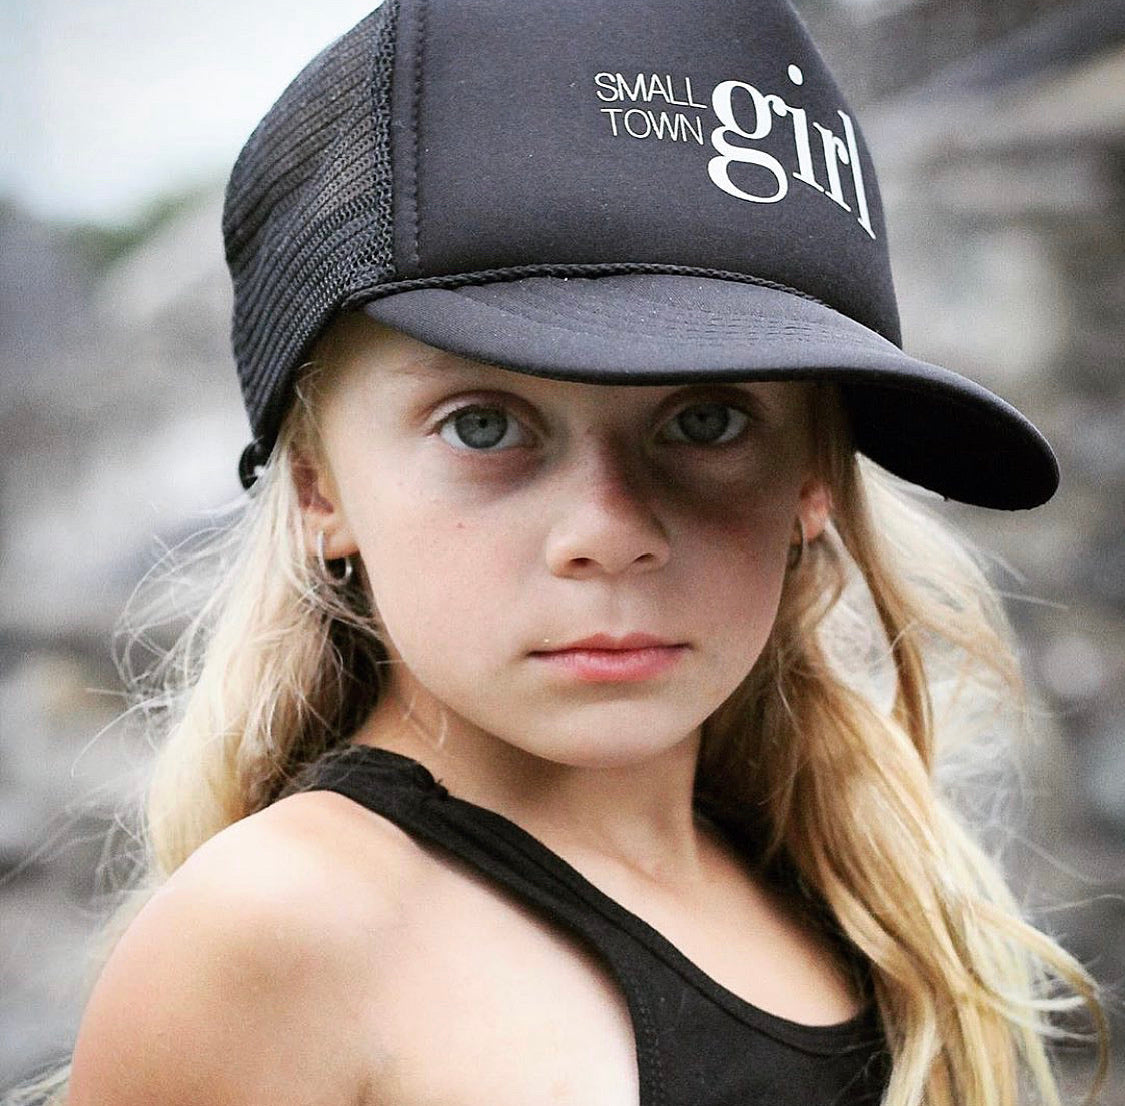 Small Town Girl - Snapback Trucker Hat